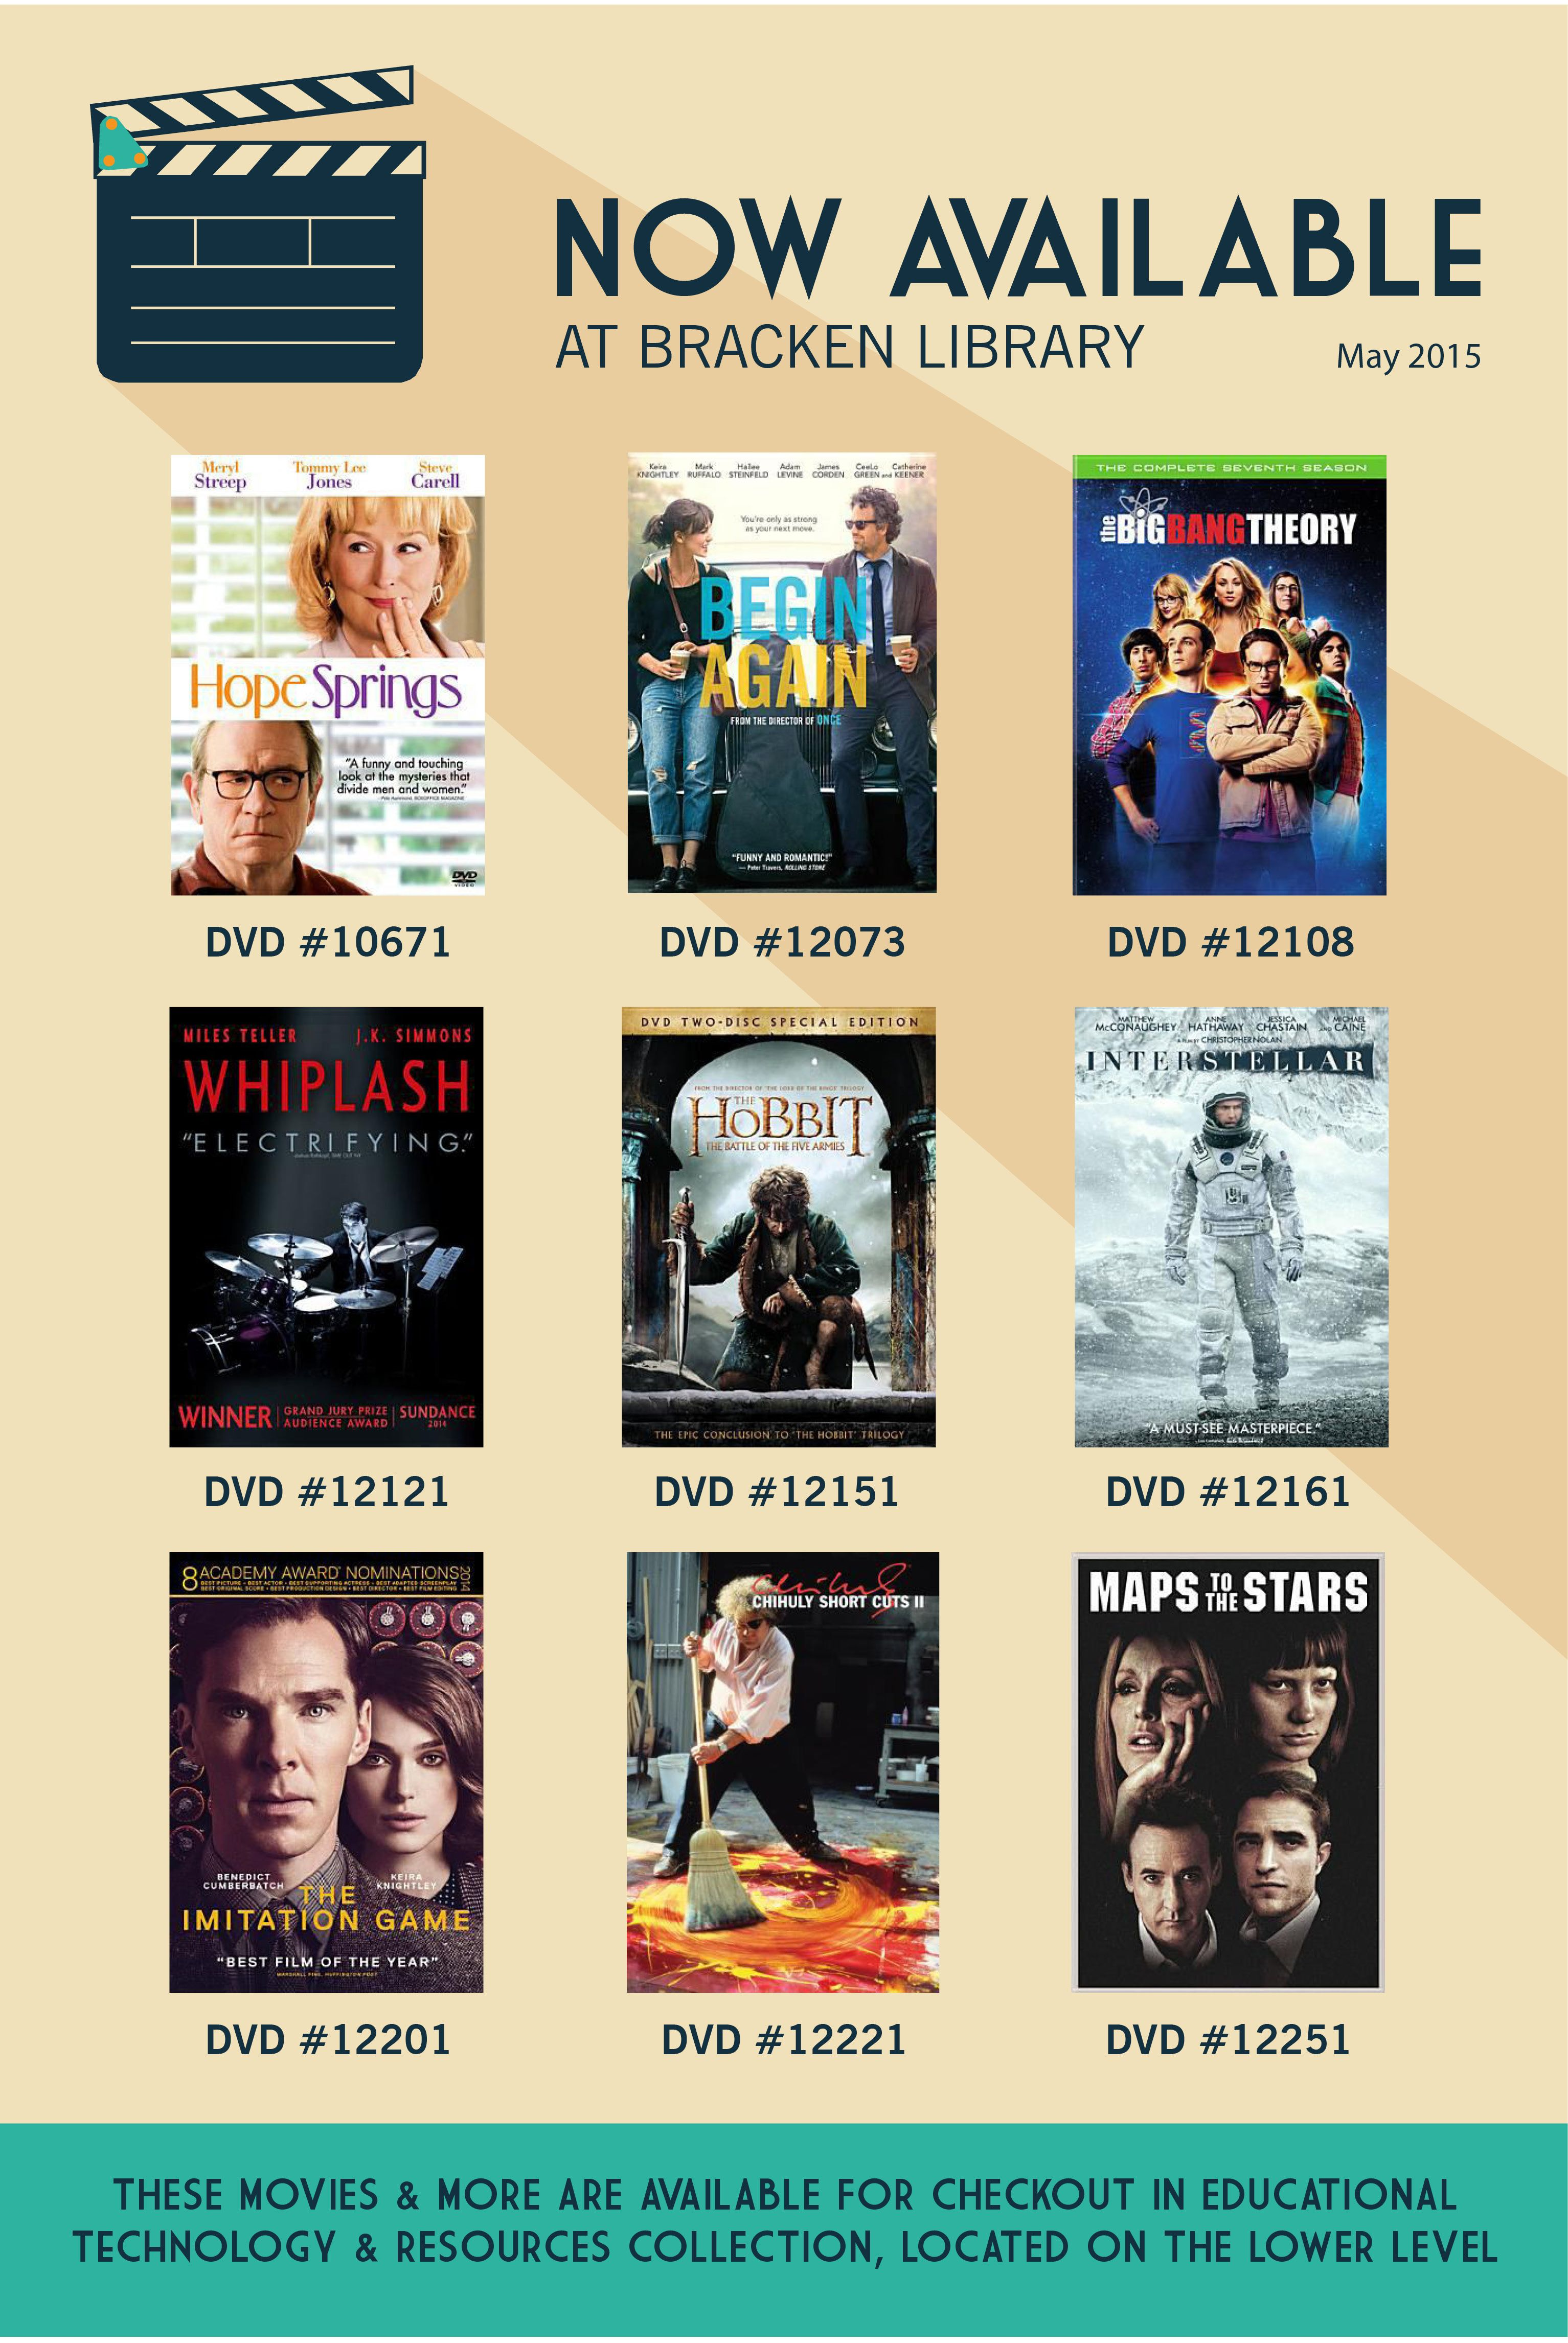 Movies That Are Now Available At Bracken Library May 2015 Ball State University Library Health Science